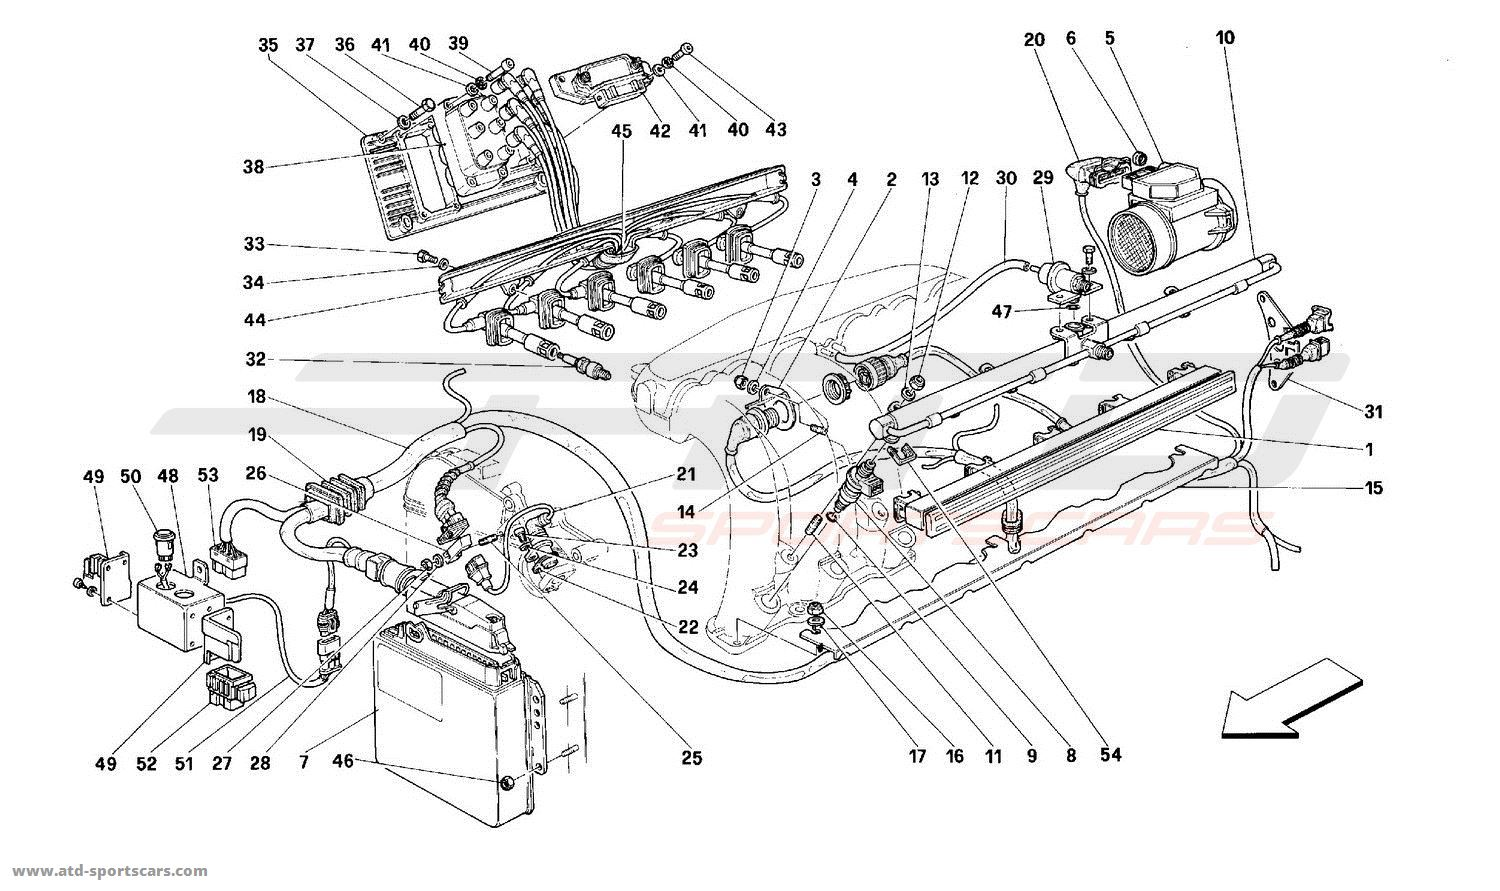 AIR INJECTION - IGNITION